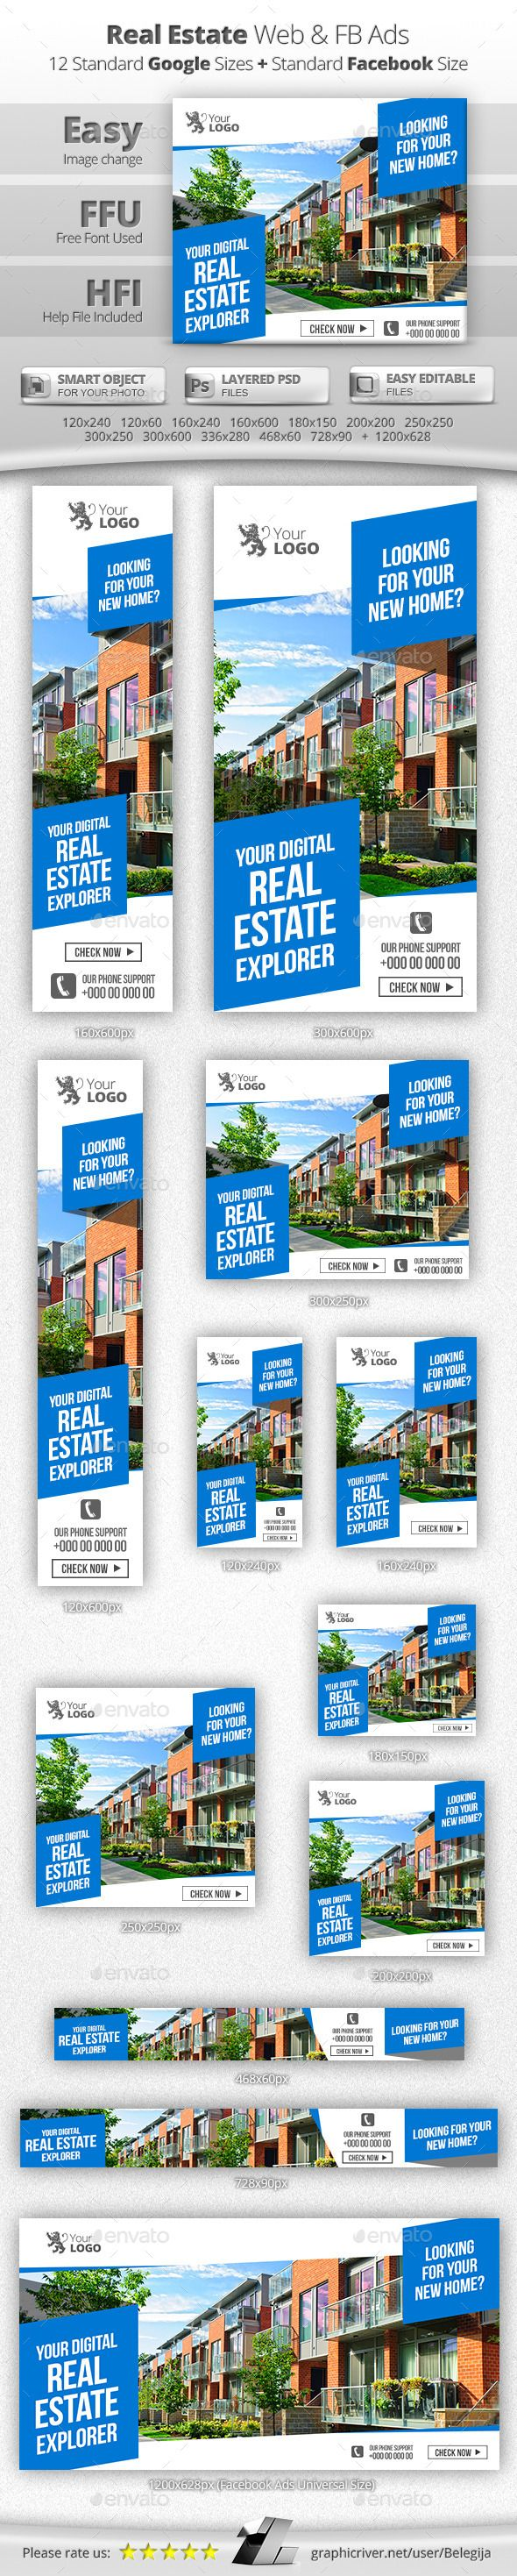 Real Estate Web & Facebook Banners | Facebook banner and Banners